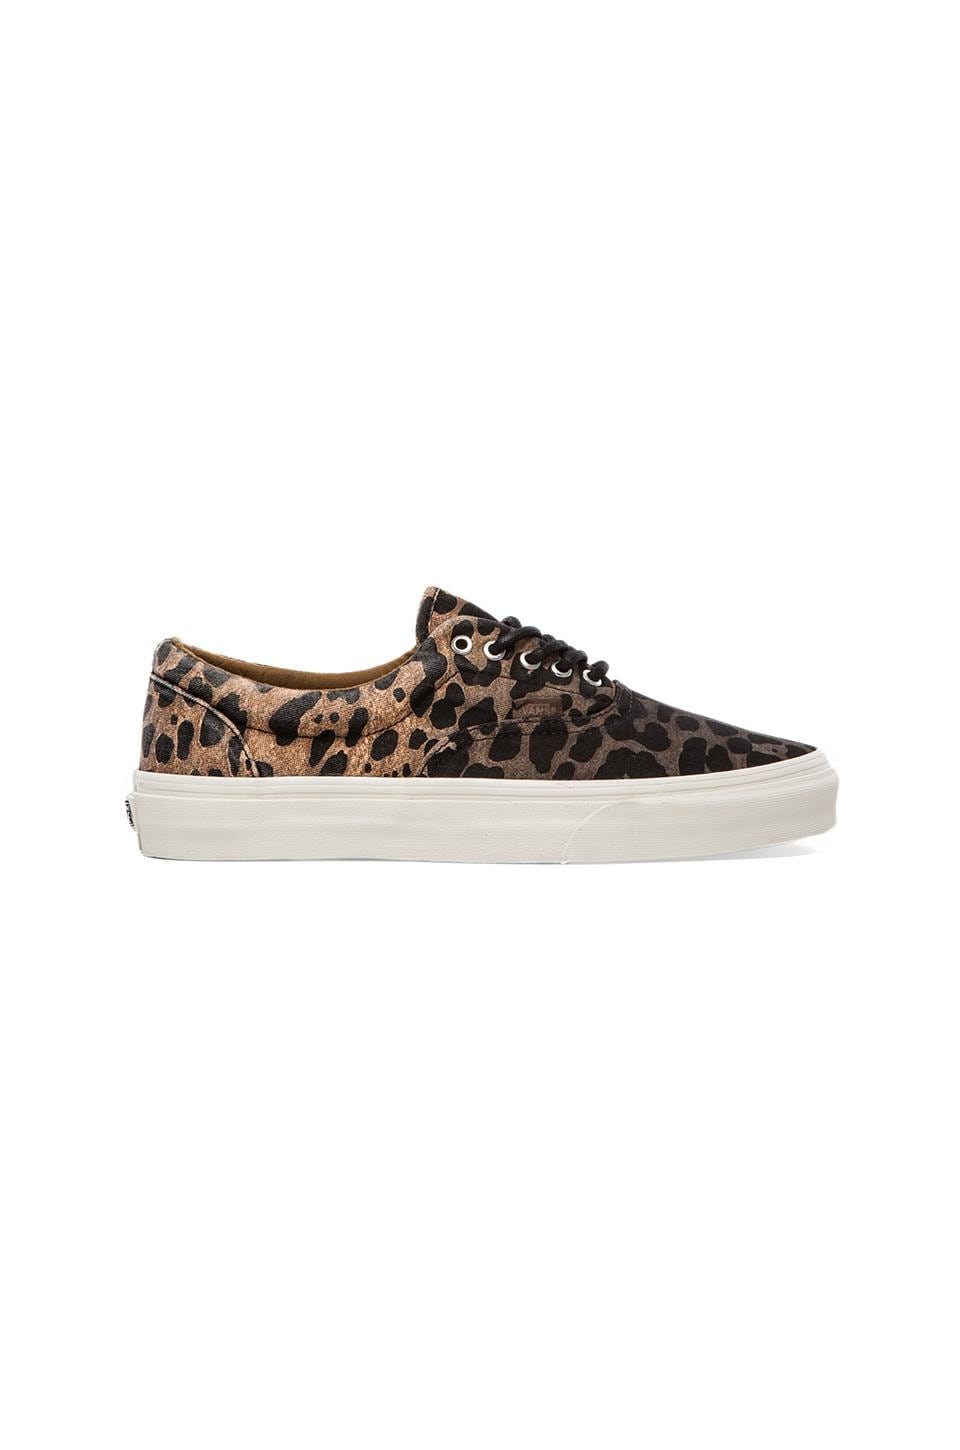 Vans California Era Ombre Dyed Cheetah in Black